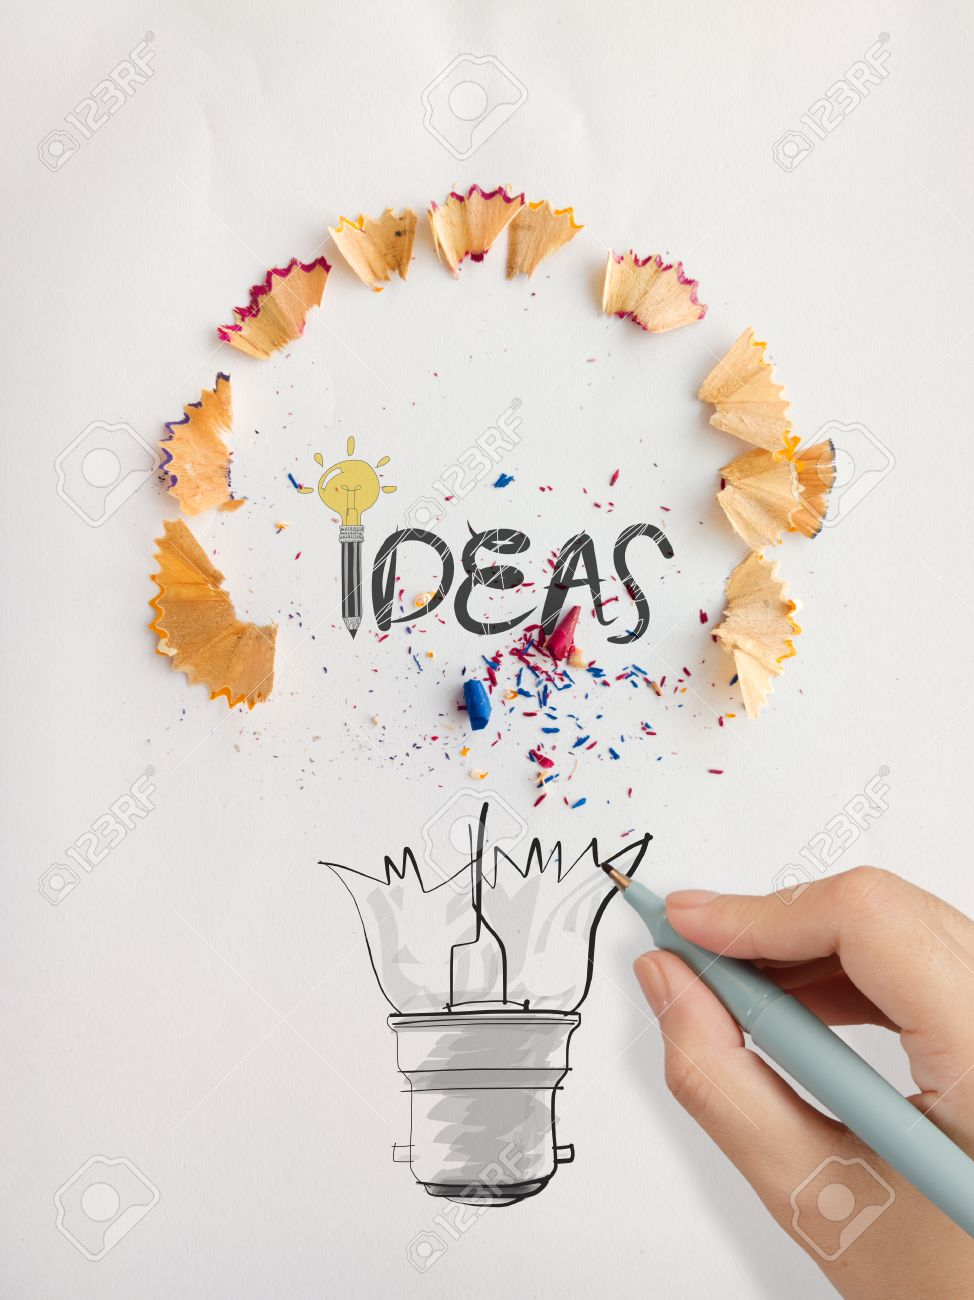 Design Idea Hand Drawn Light Bulb Word Design Idea With Pencil Saw Dust On